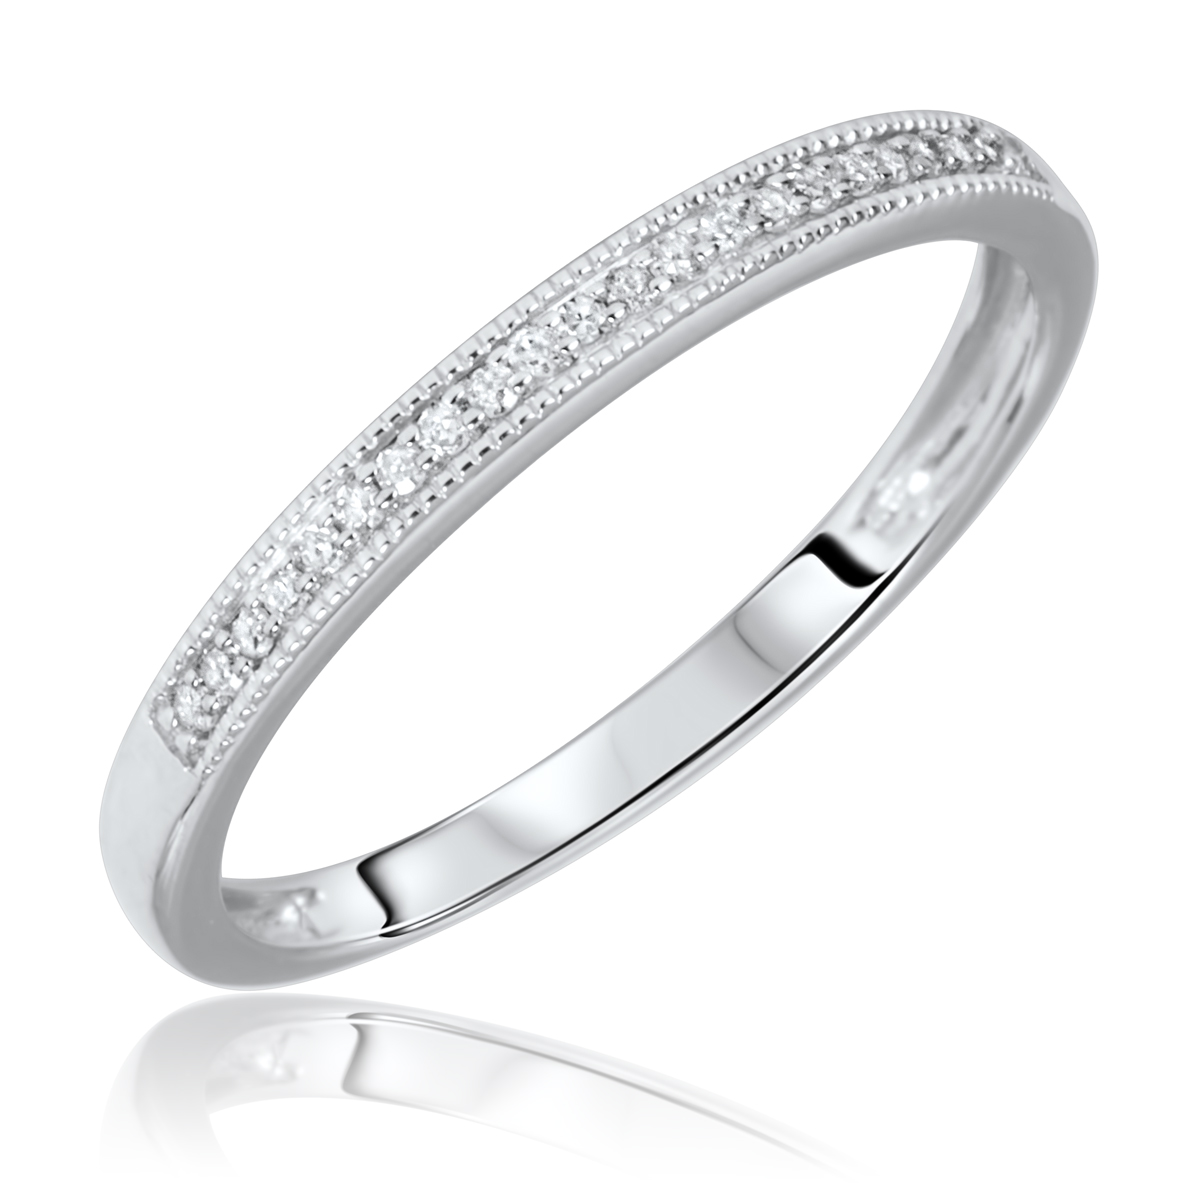 15 Carat T.W. Round Cut Diamond Ladies Wedding Band 14K White Gold